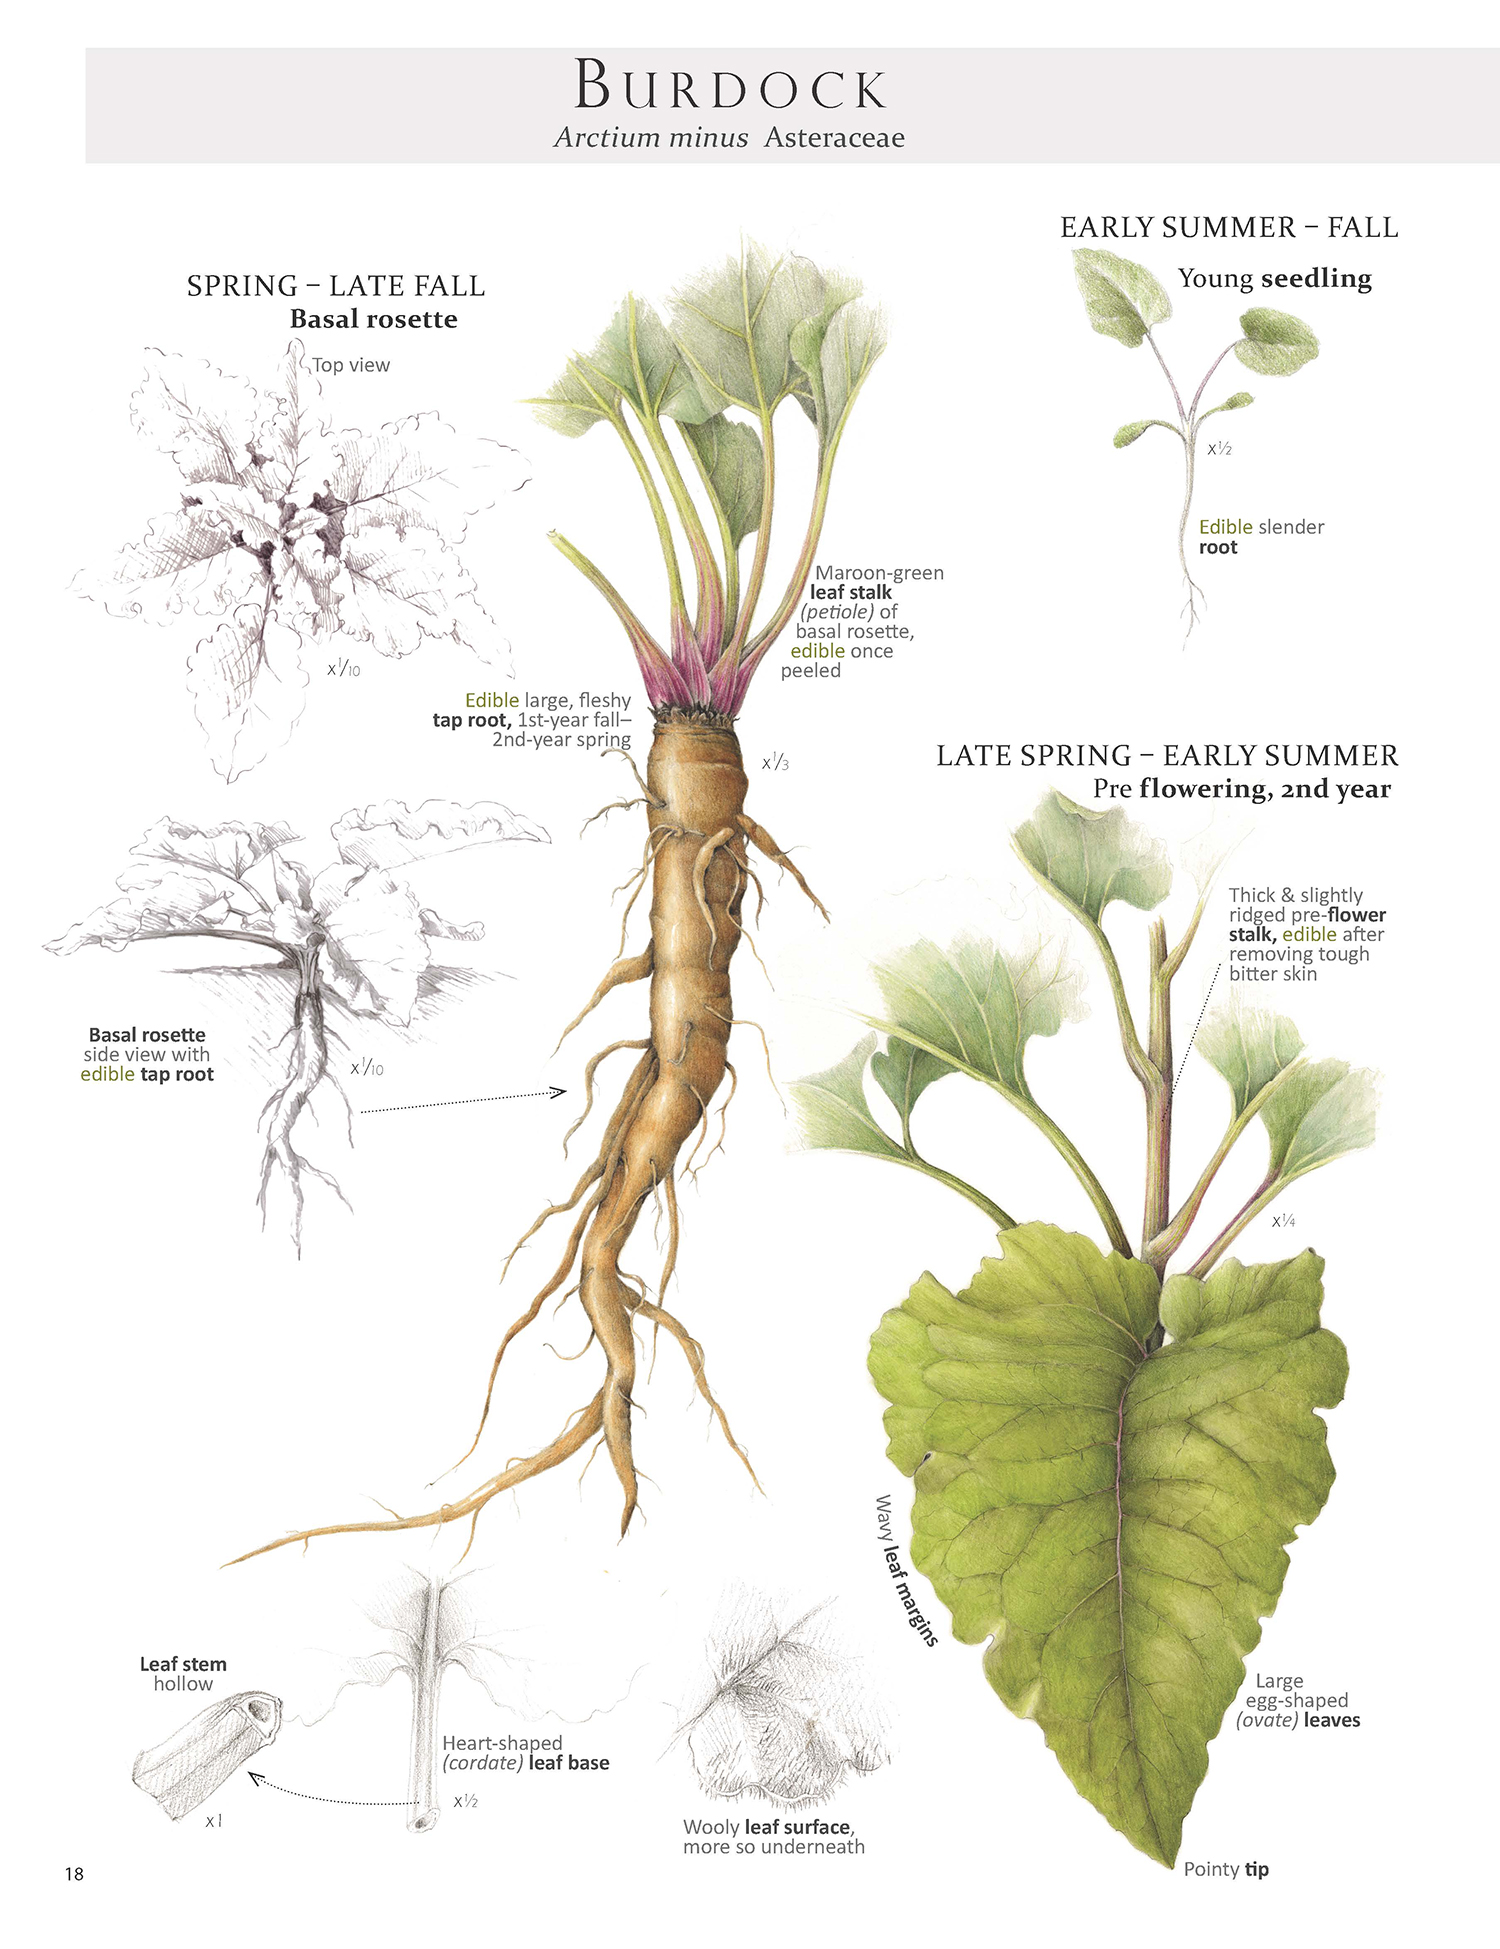 One of the Burdock pages from    Foraging & Feasting: A Field Guide and Wild Food Cookbook    by Dina Falconi; illustrated by Wendy Hollender.